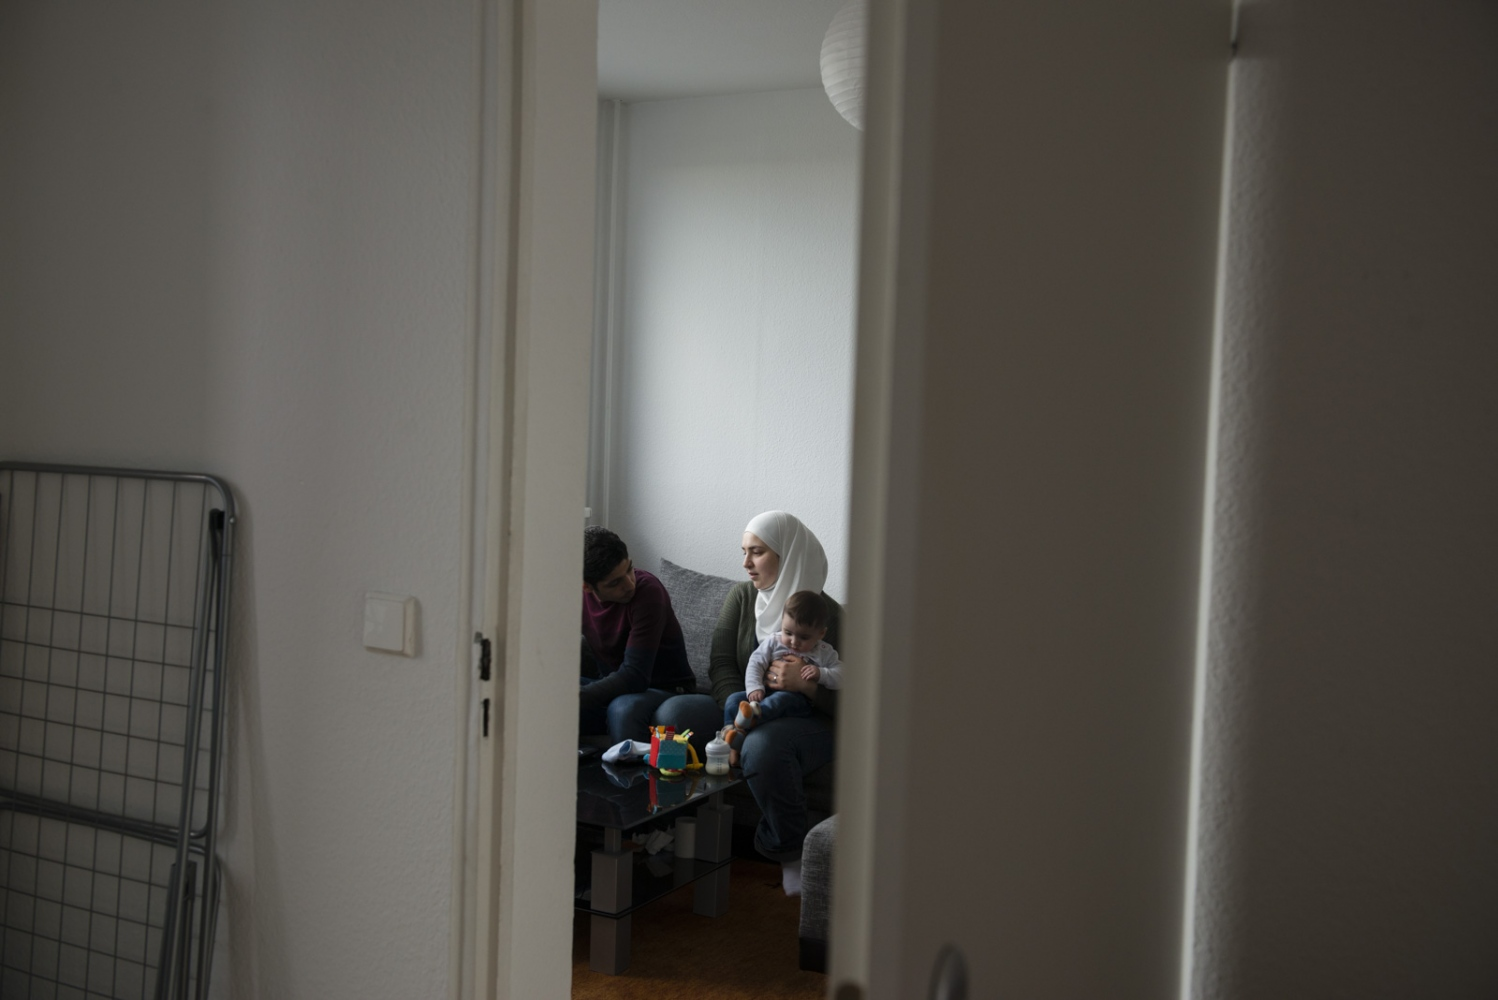 BERLIN | GERMANY | 2017-04-11 | In an unusual setting of syrian marriage, Amani Kaskin (32) and Maher (24) share that house chores and caring for 4 month old baby Kareem. Amani had to flee Damascus alongside his best friend at the time, Maher (24), to leave a troubled past behind in Damascus. Maher propose to Amani despite the unusual age gap and her previous marriage and the couple got married in Istanbul. Upon arriving in Germany, Amani restored a new life and gave birth to Kareem in Nov 2016. The couple are now settled in Lichtenberg, Berlin.